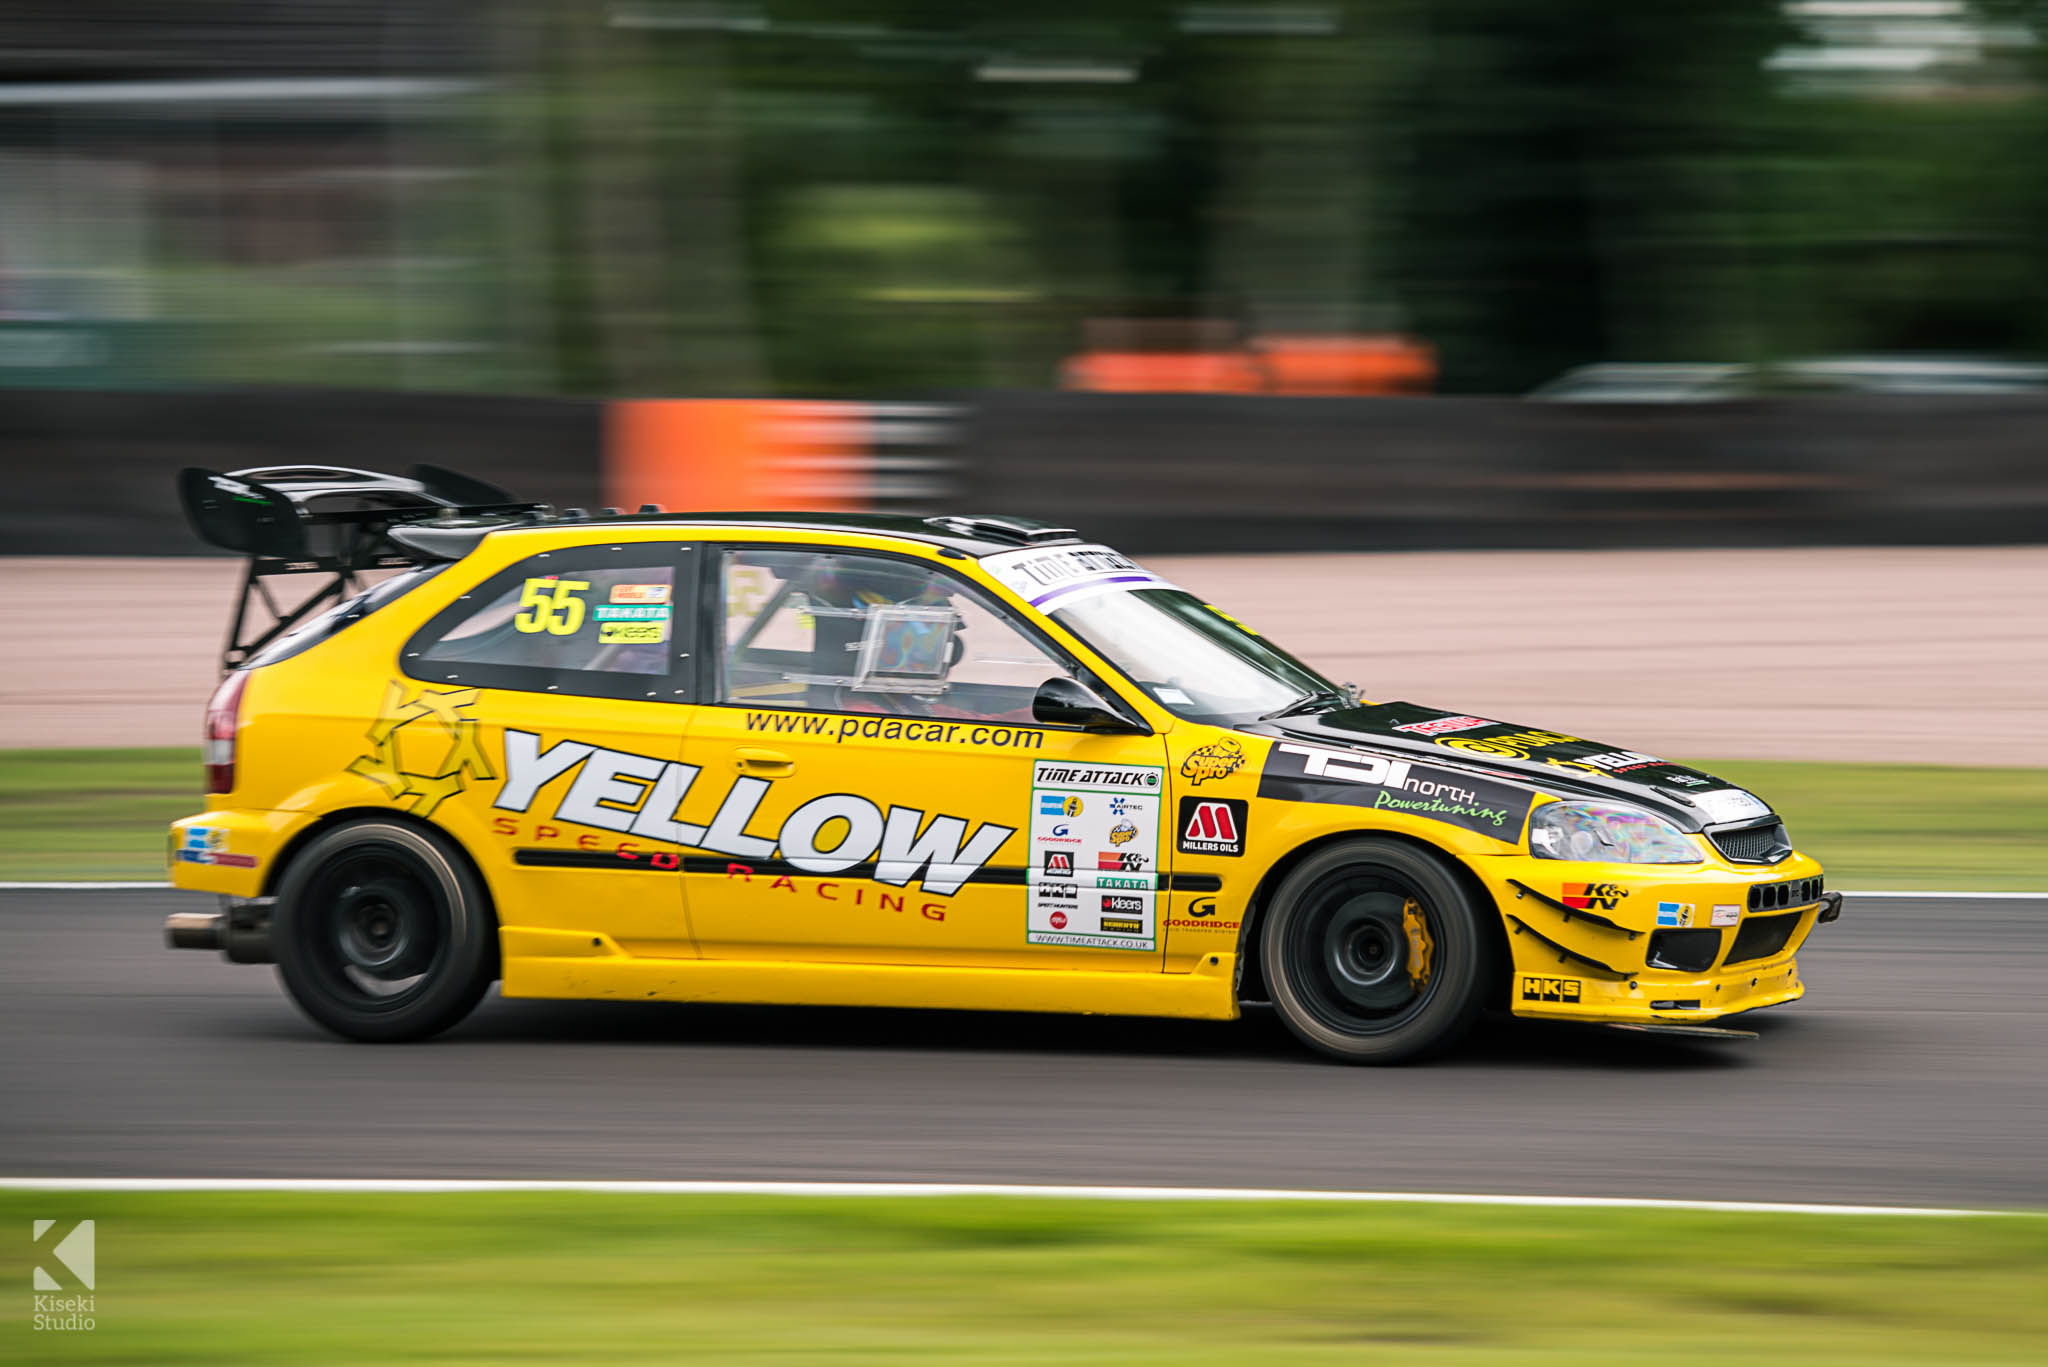 Honda Civic EK4 Yellow Speed Performance Time Attack